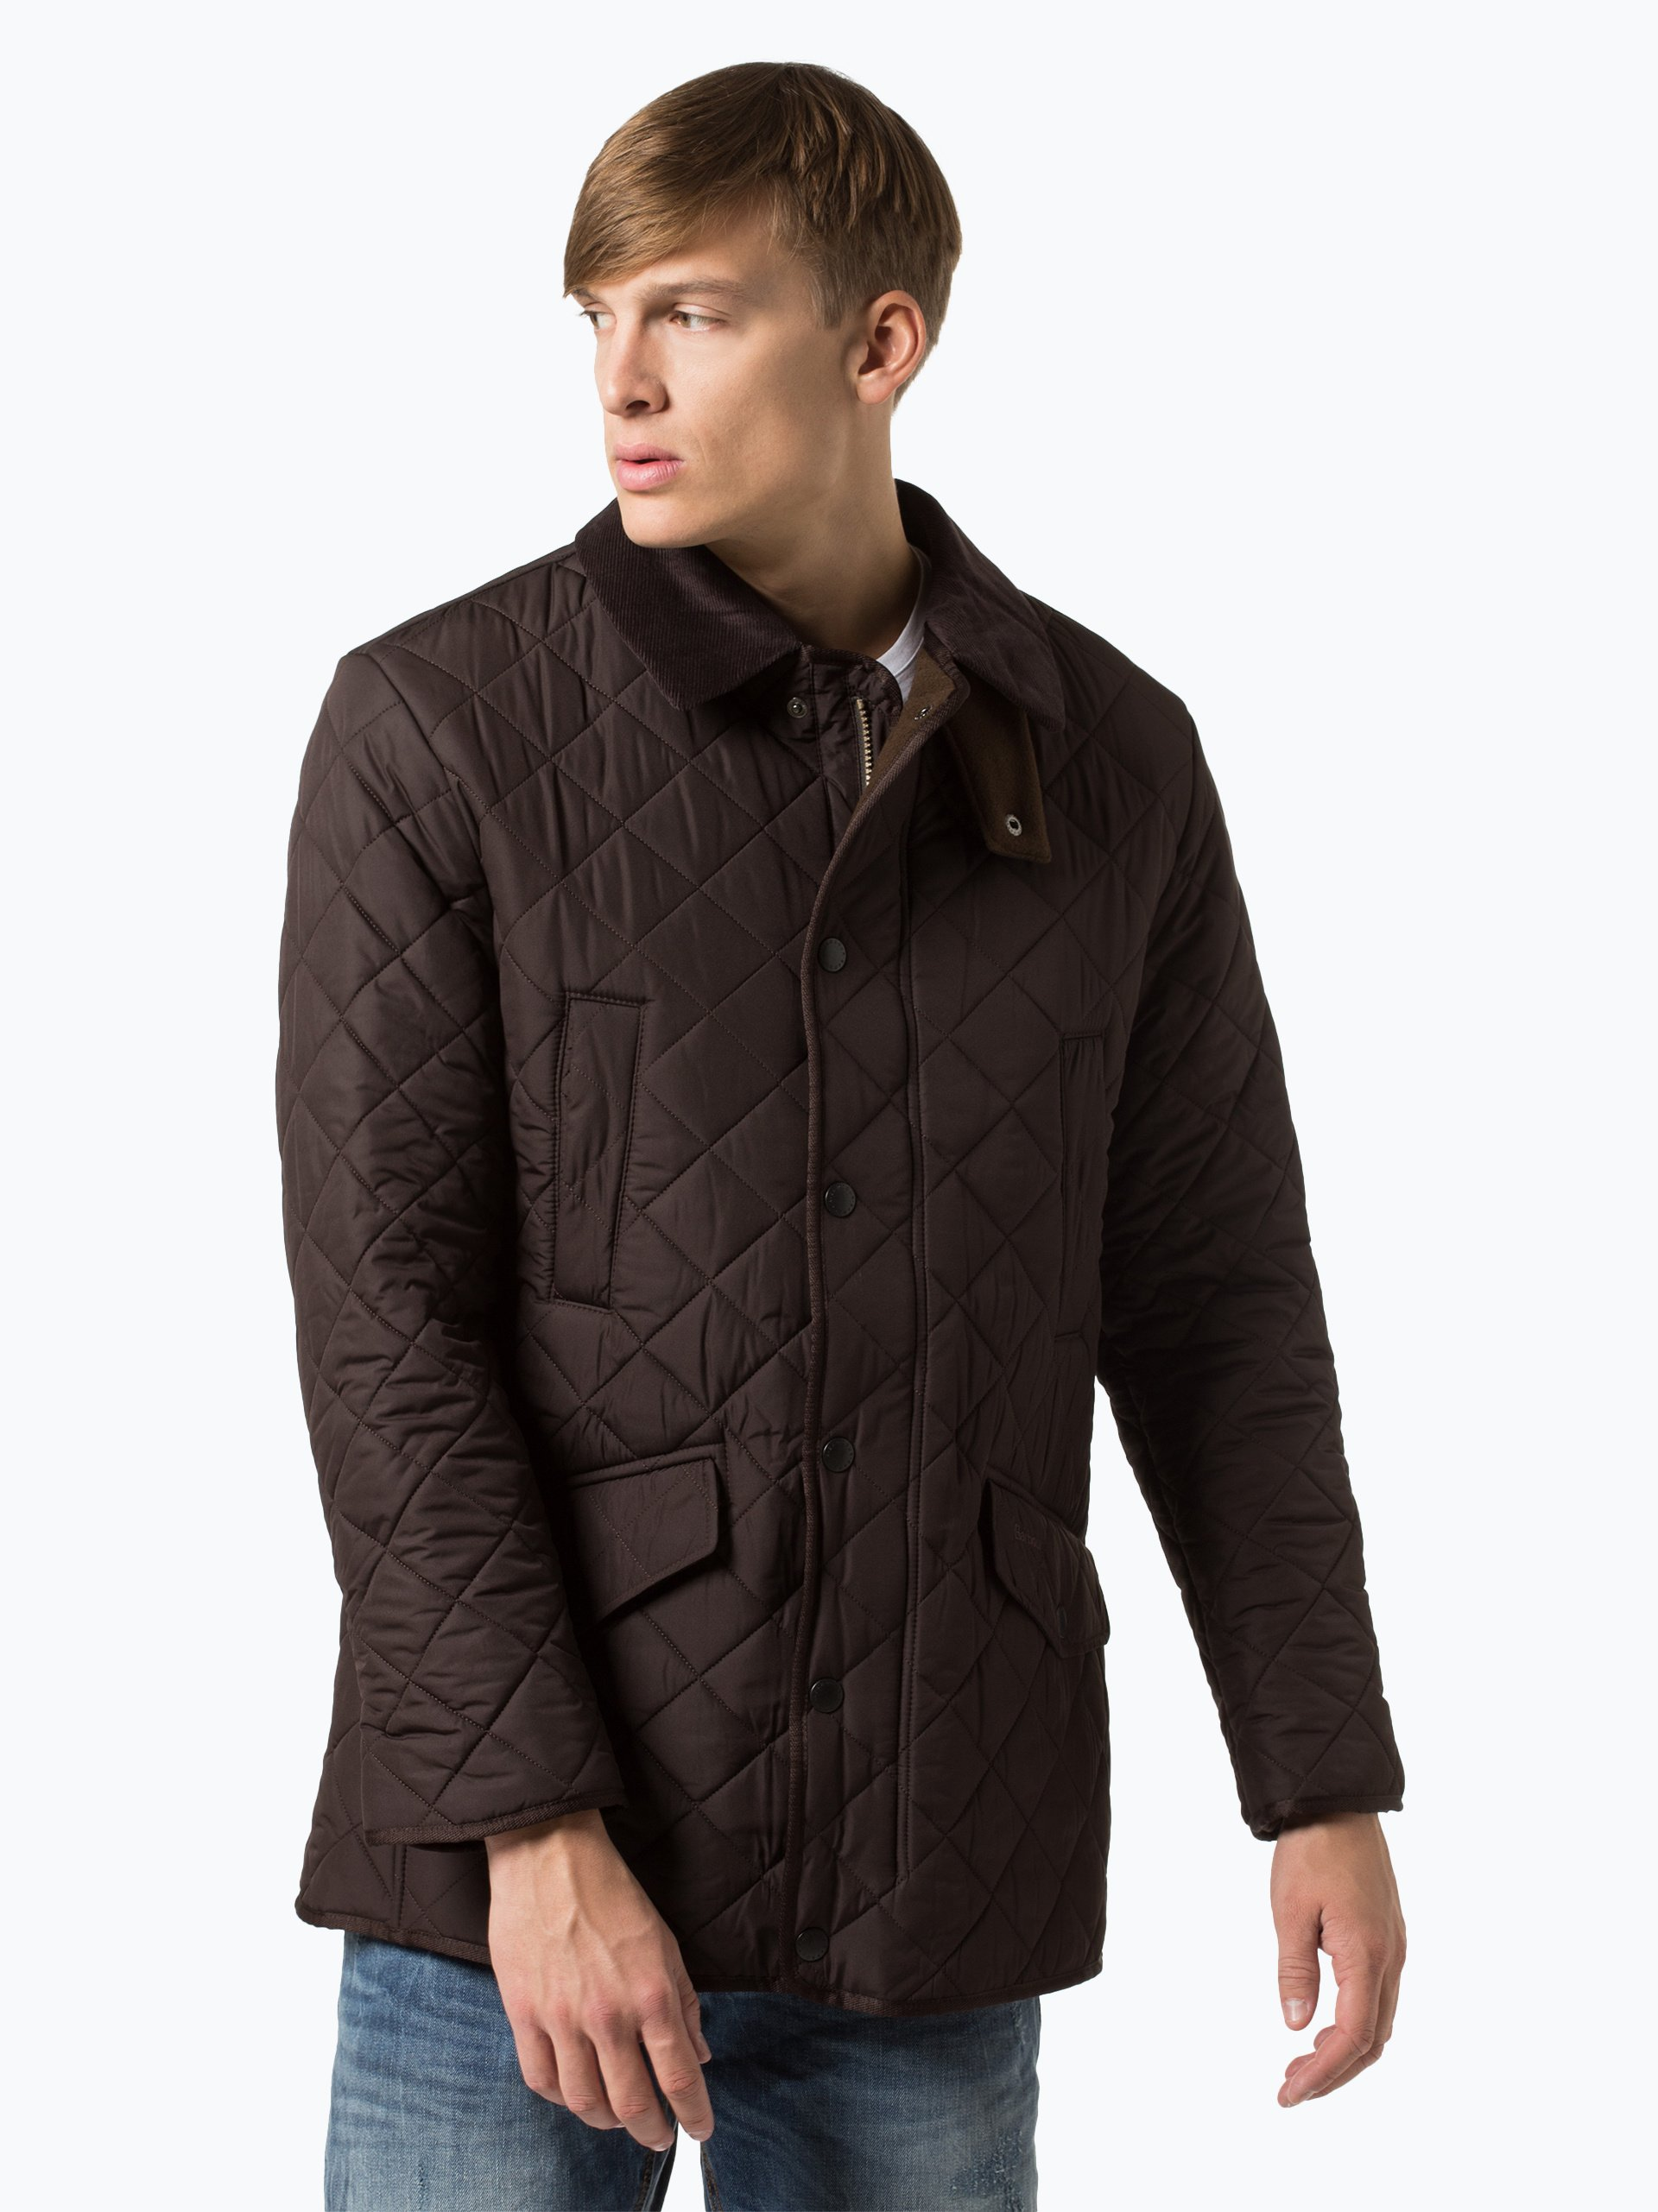 barbour herren jacke bardon quilt schoko uni online. Black Bedroom Furniture Sets. Home Design Ideas